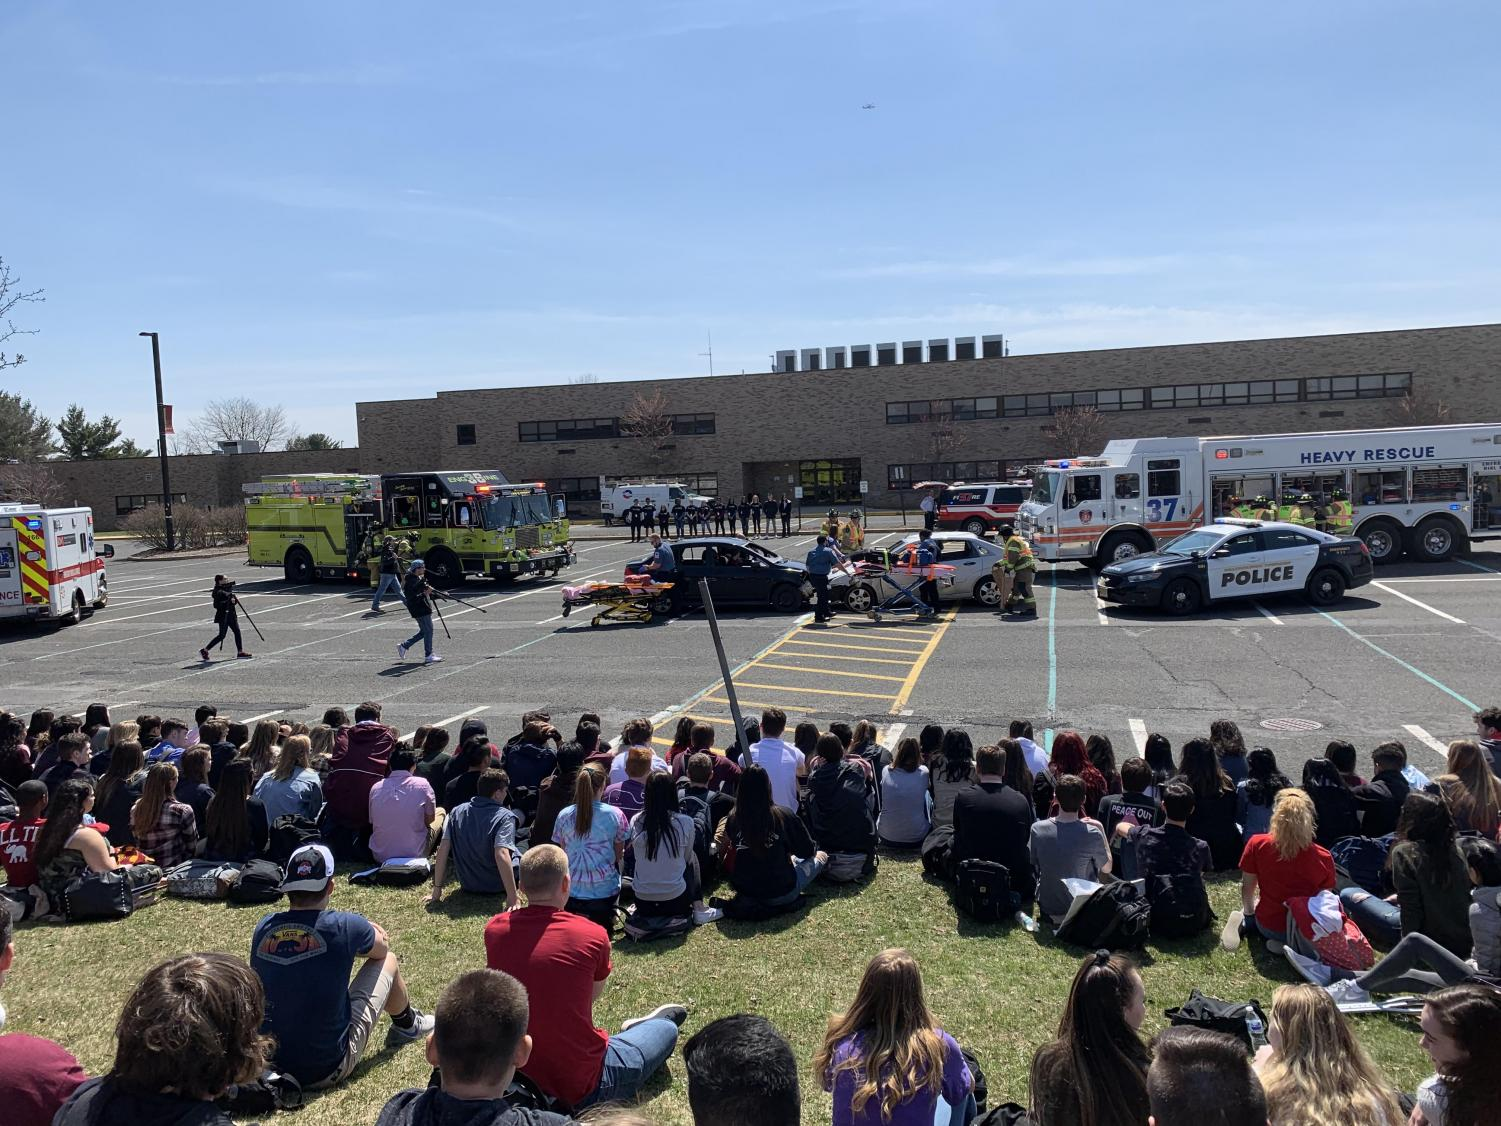 Students gather to observe the chilling staged accident scene.